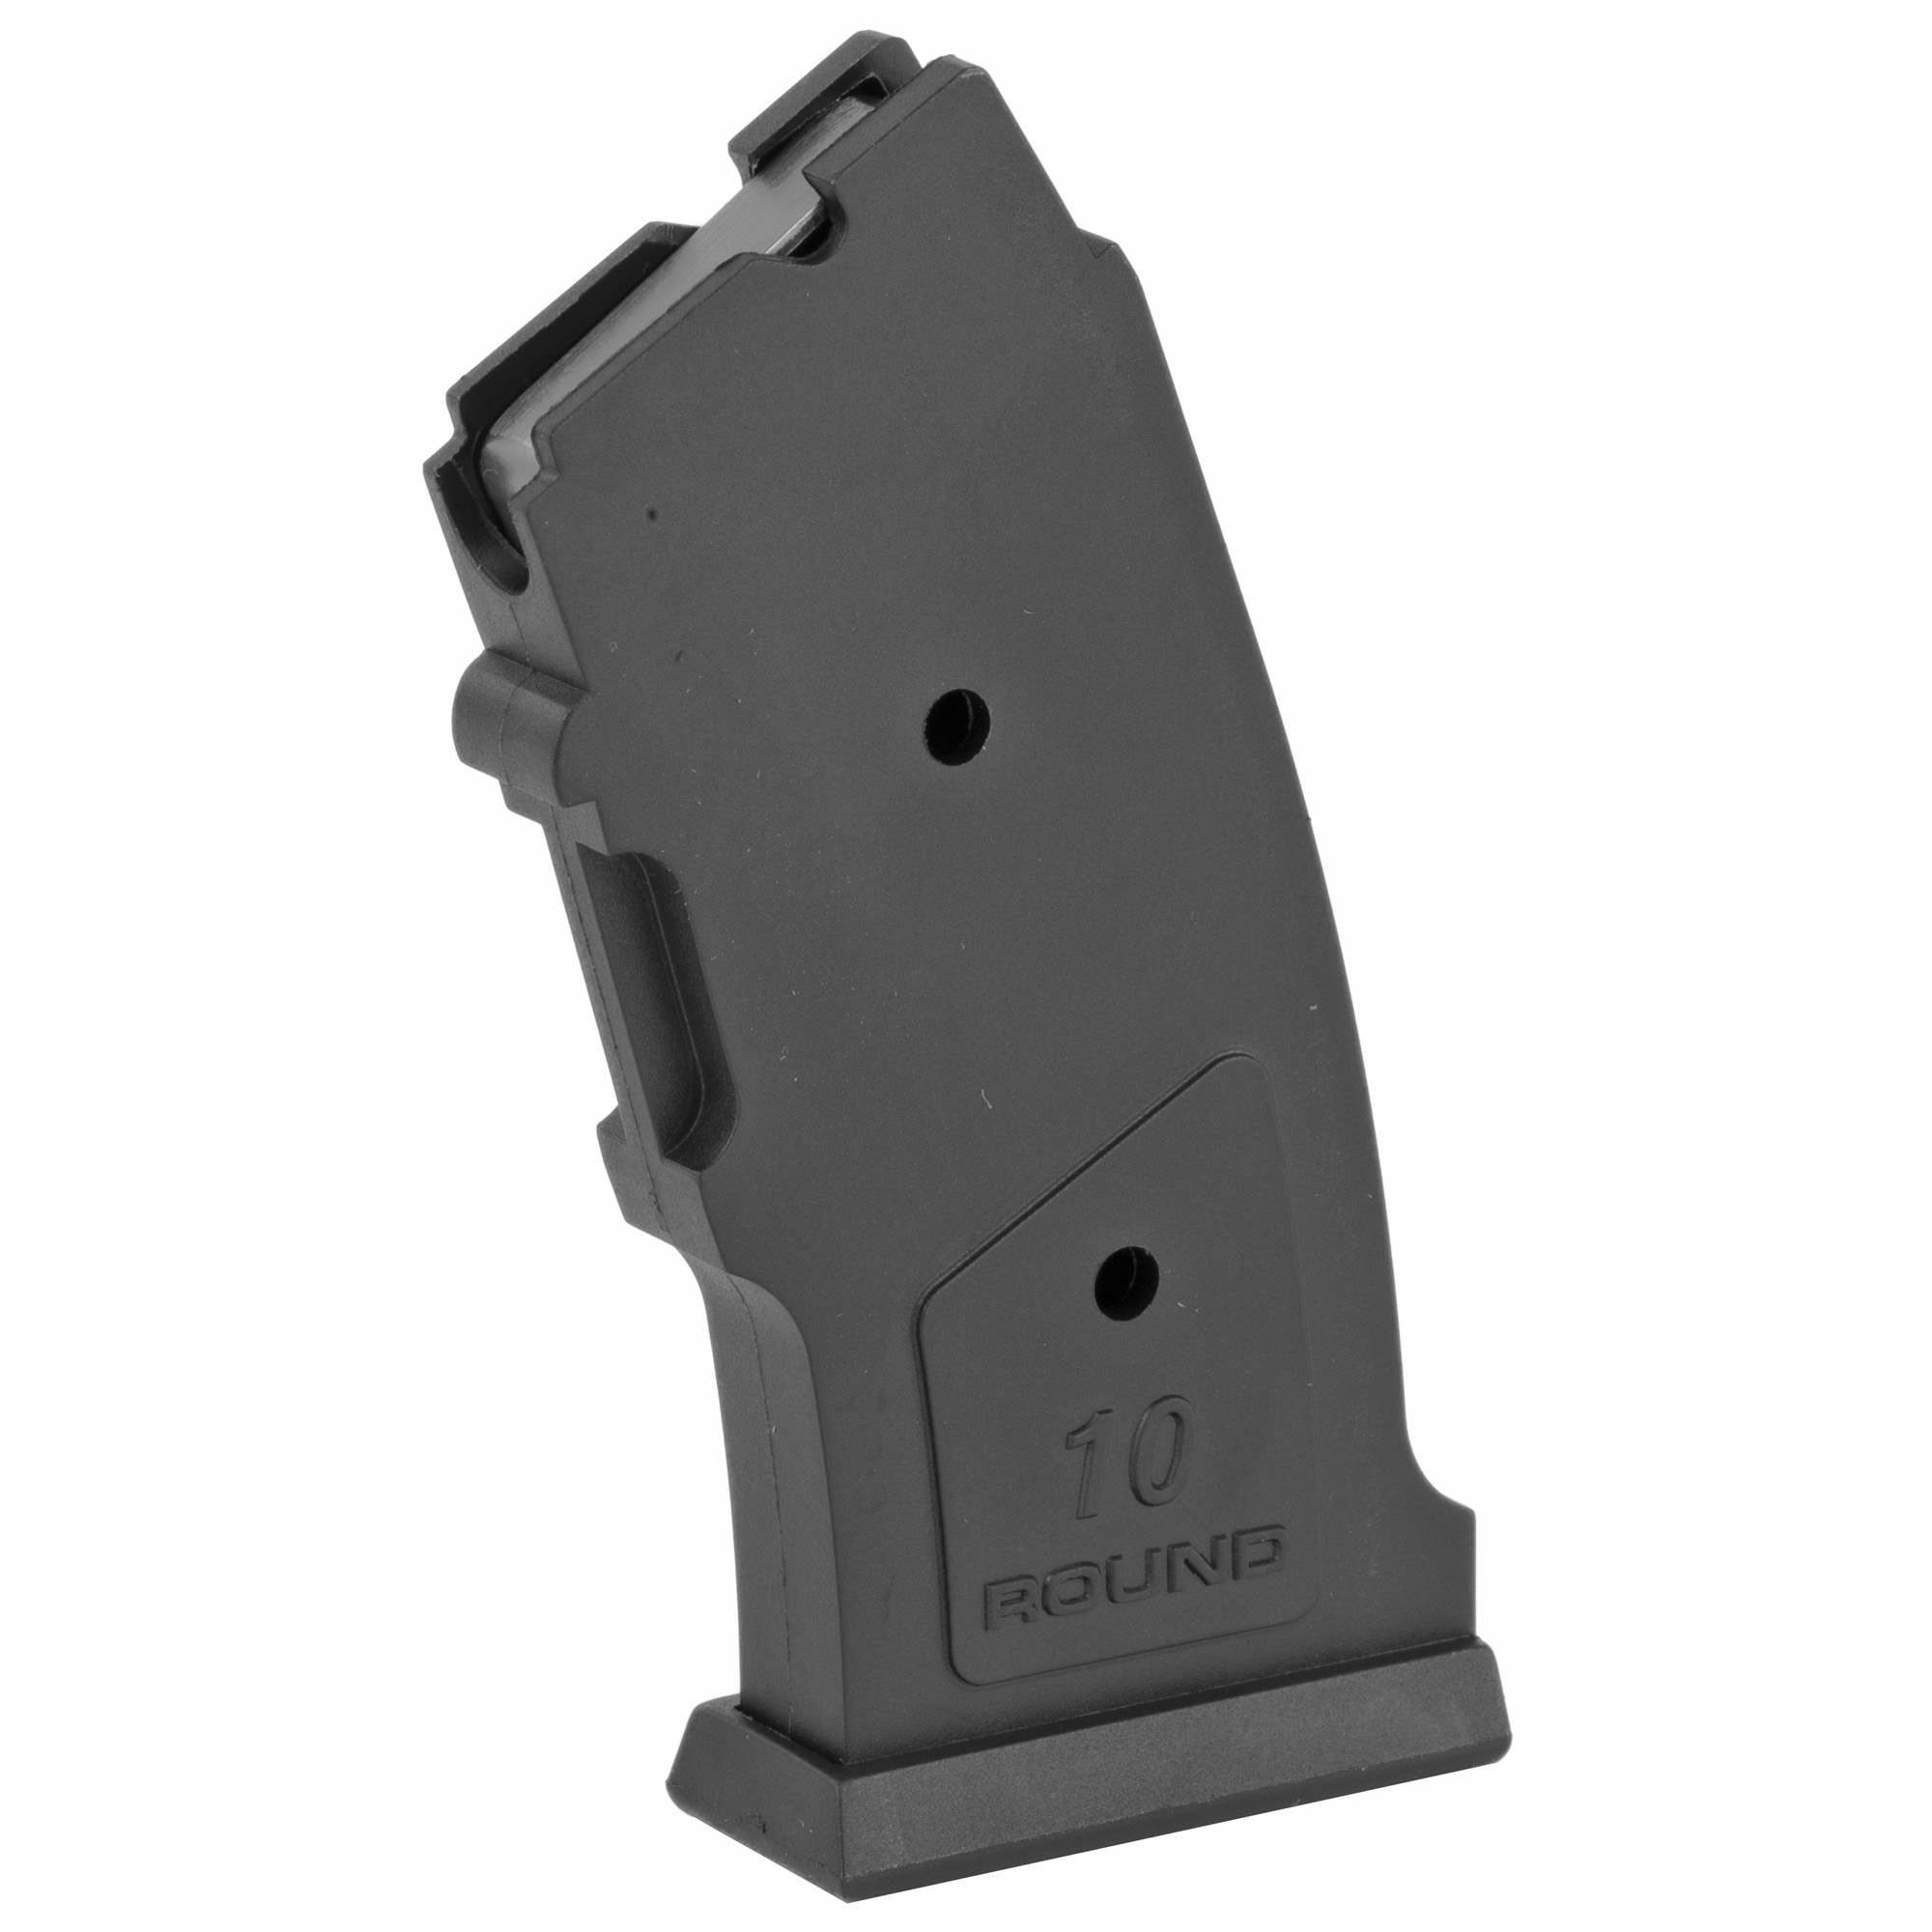 This CZ factory OEM magazine features durable polymer construction that will ensure a lifetime of flawless function and reliability.